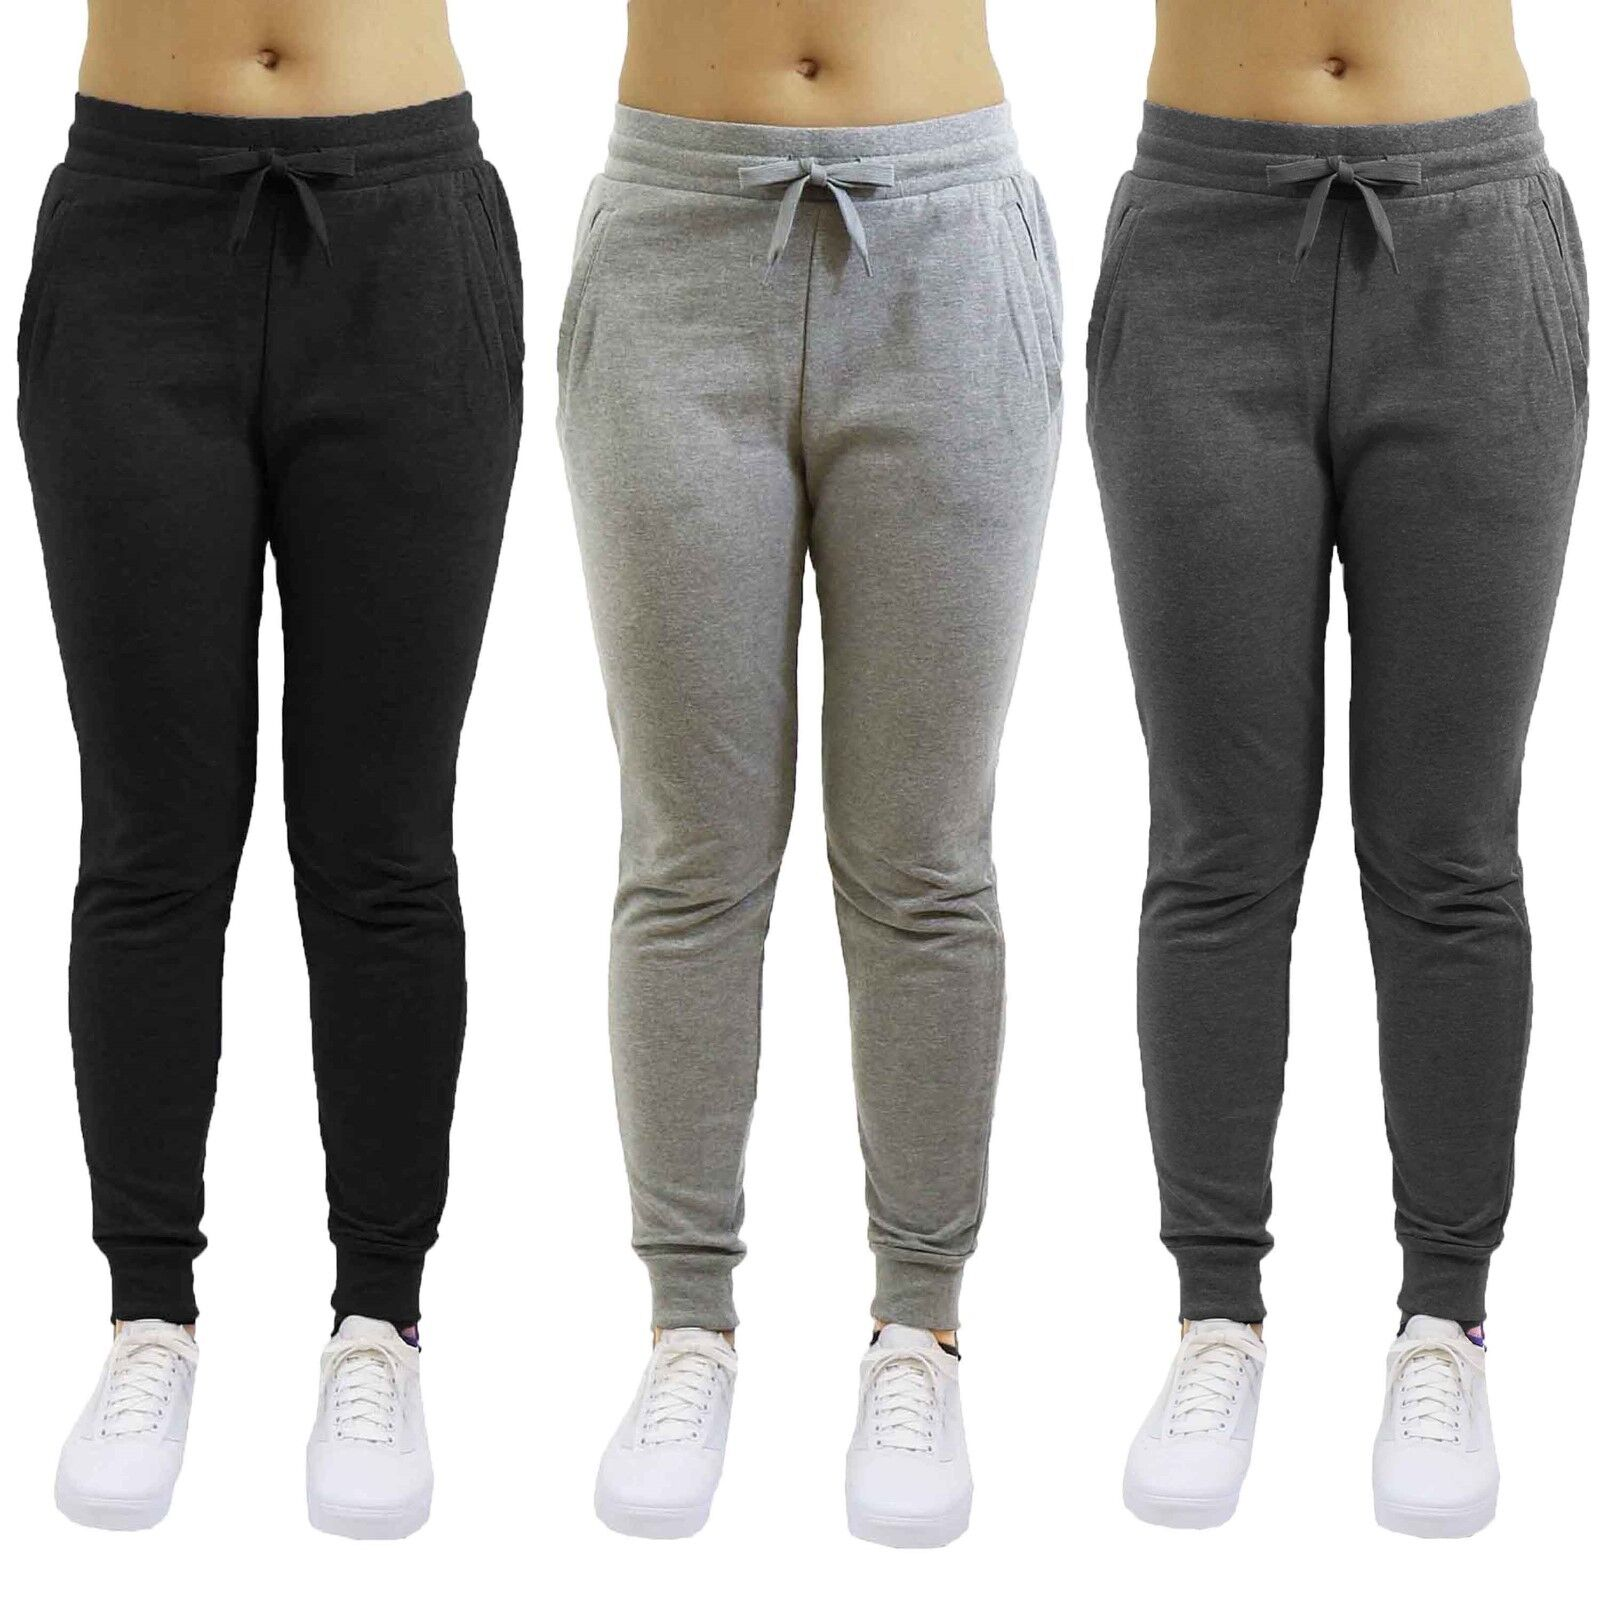 Womens French Terry Jogger Sweatpants Slim-Fit Lounge Gym Sports Yoga NEW Clothing, Shoes & Accessories